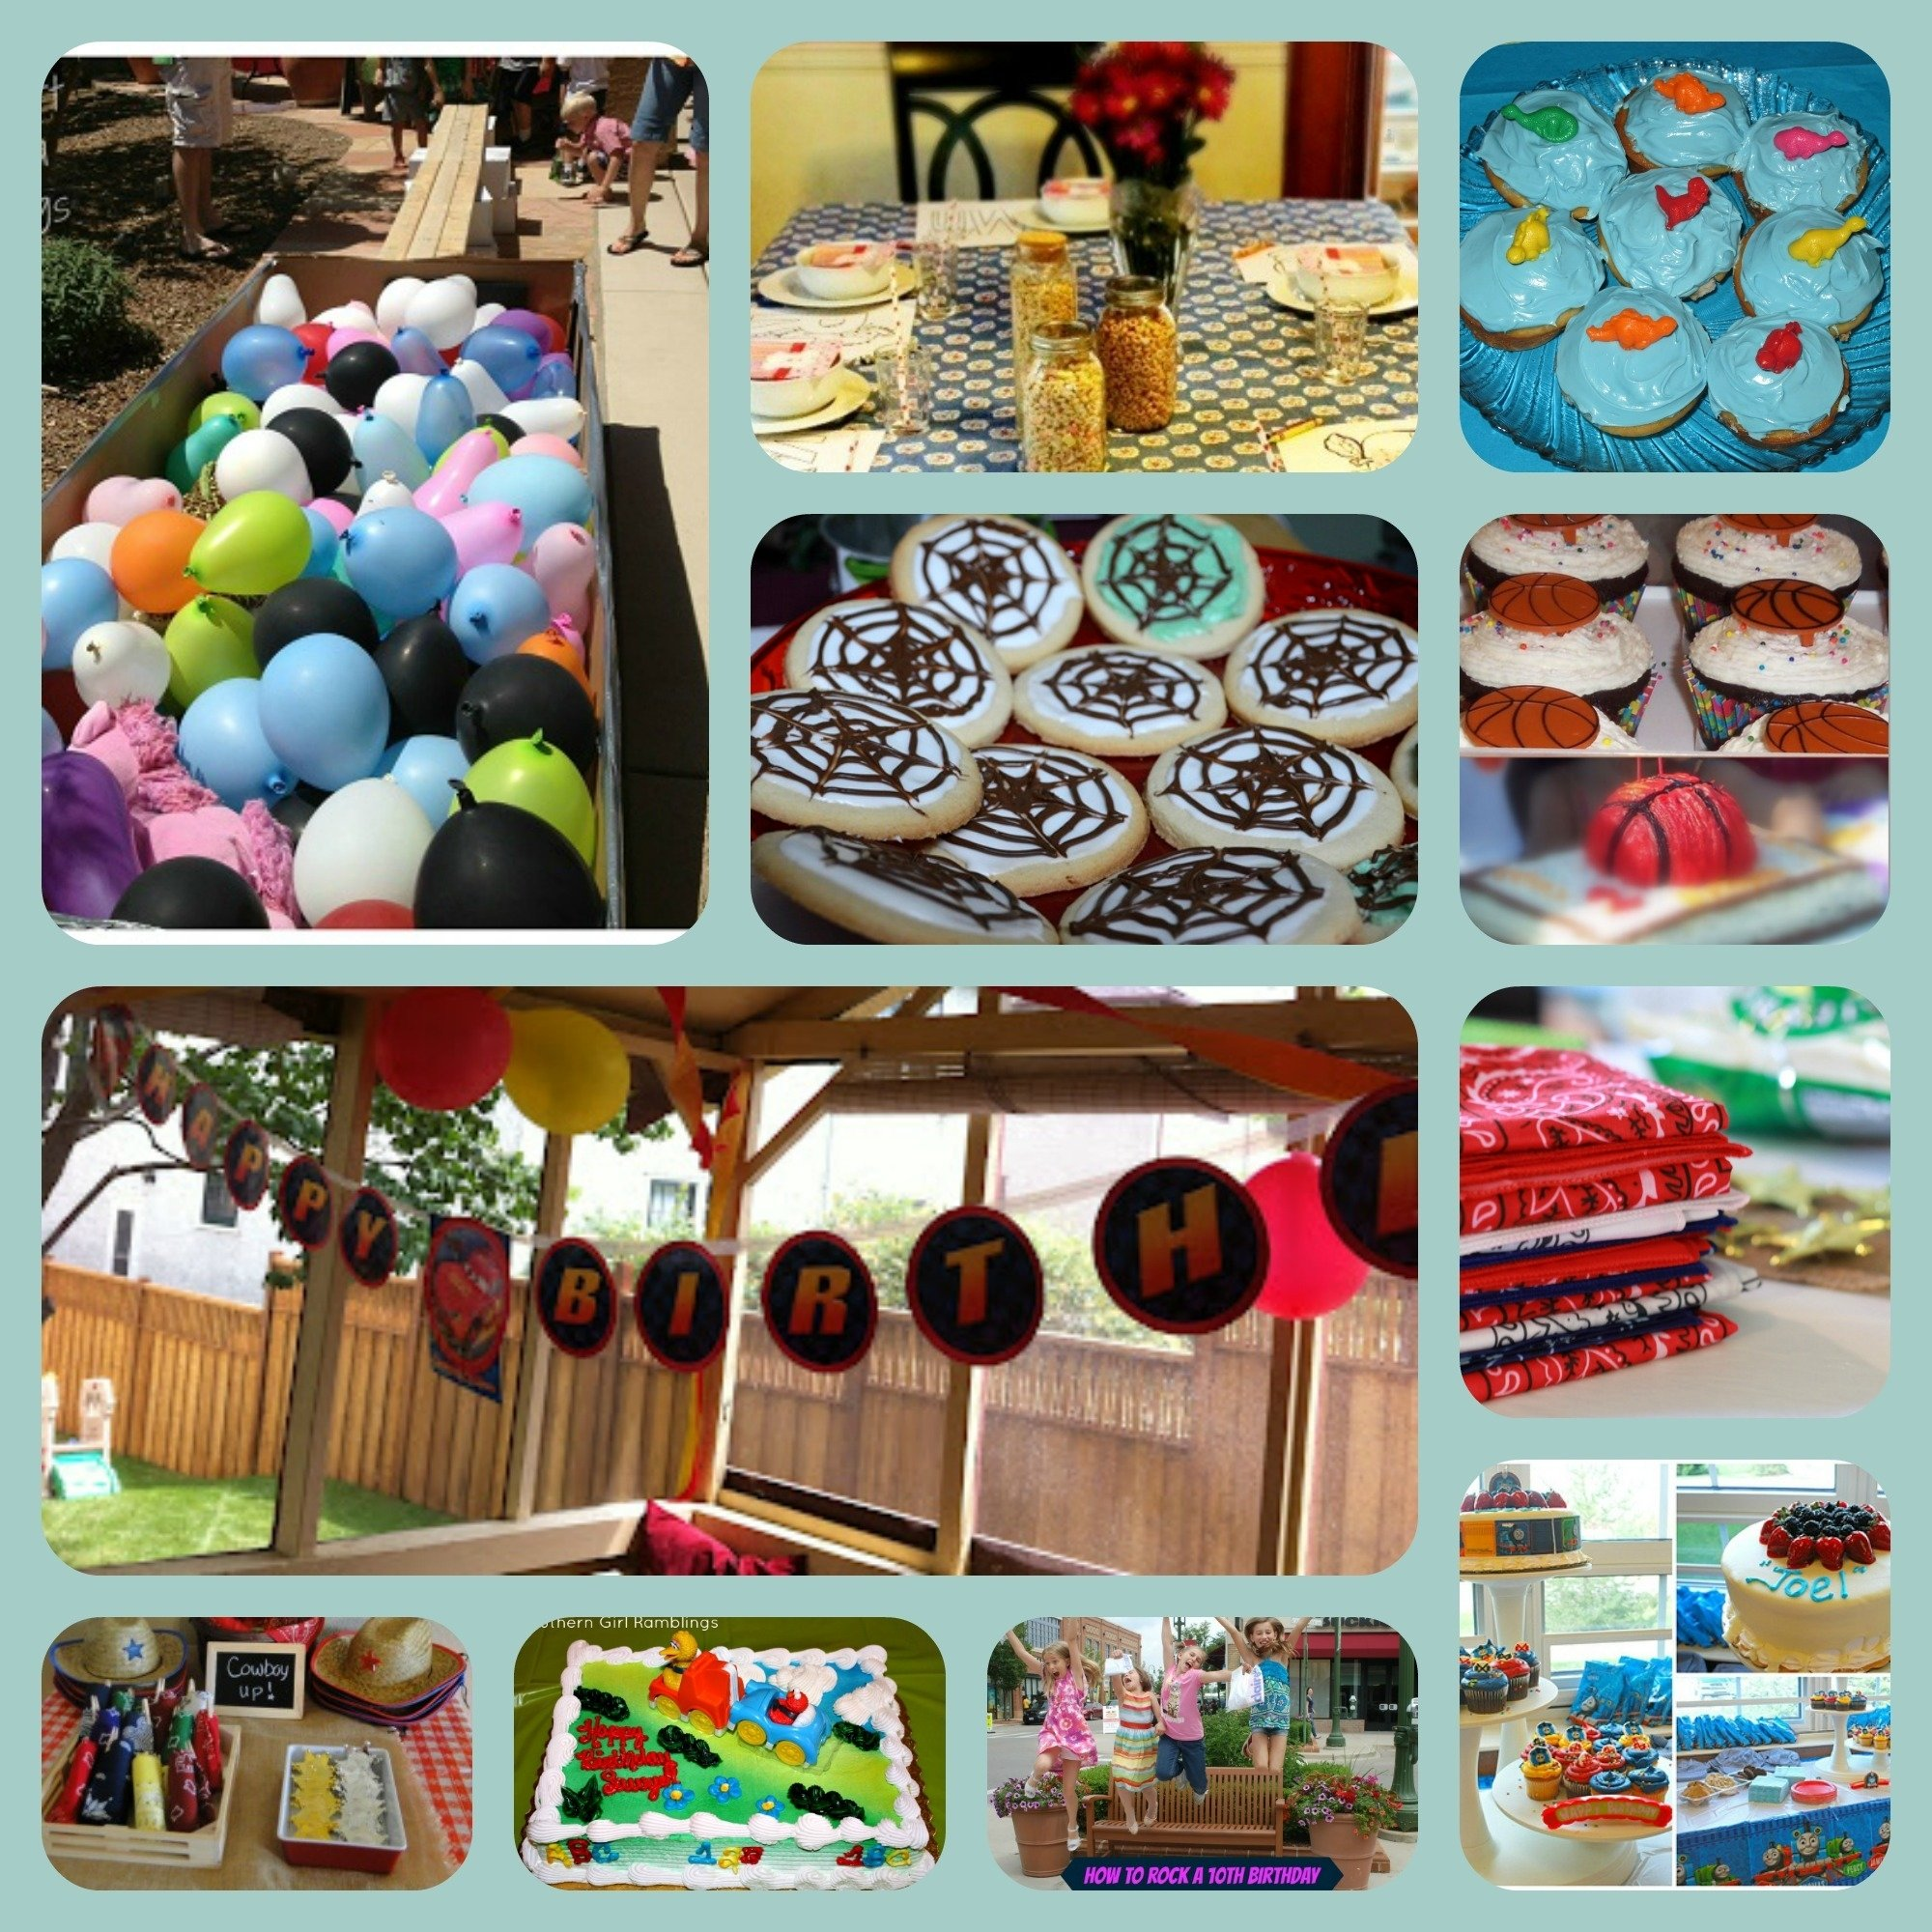 10 Most Popular Birthday Party Ideas For 10 Yr Old Girl 40 birthday party themes ideas tutorials and printables 7